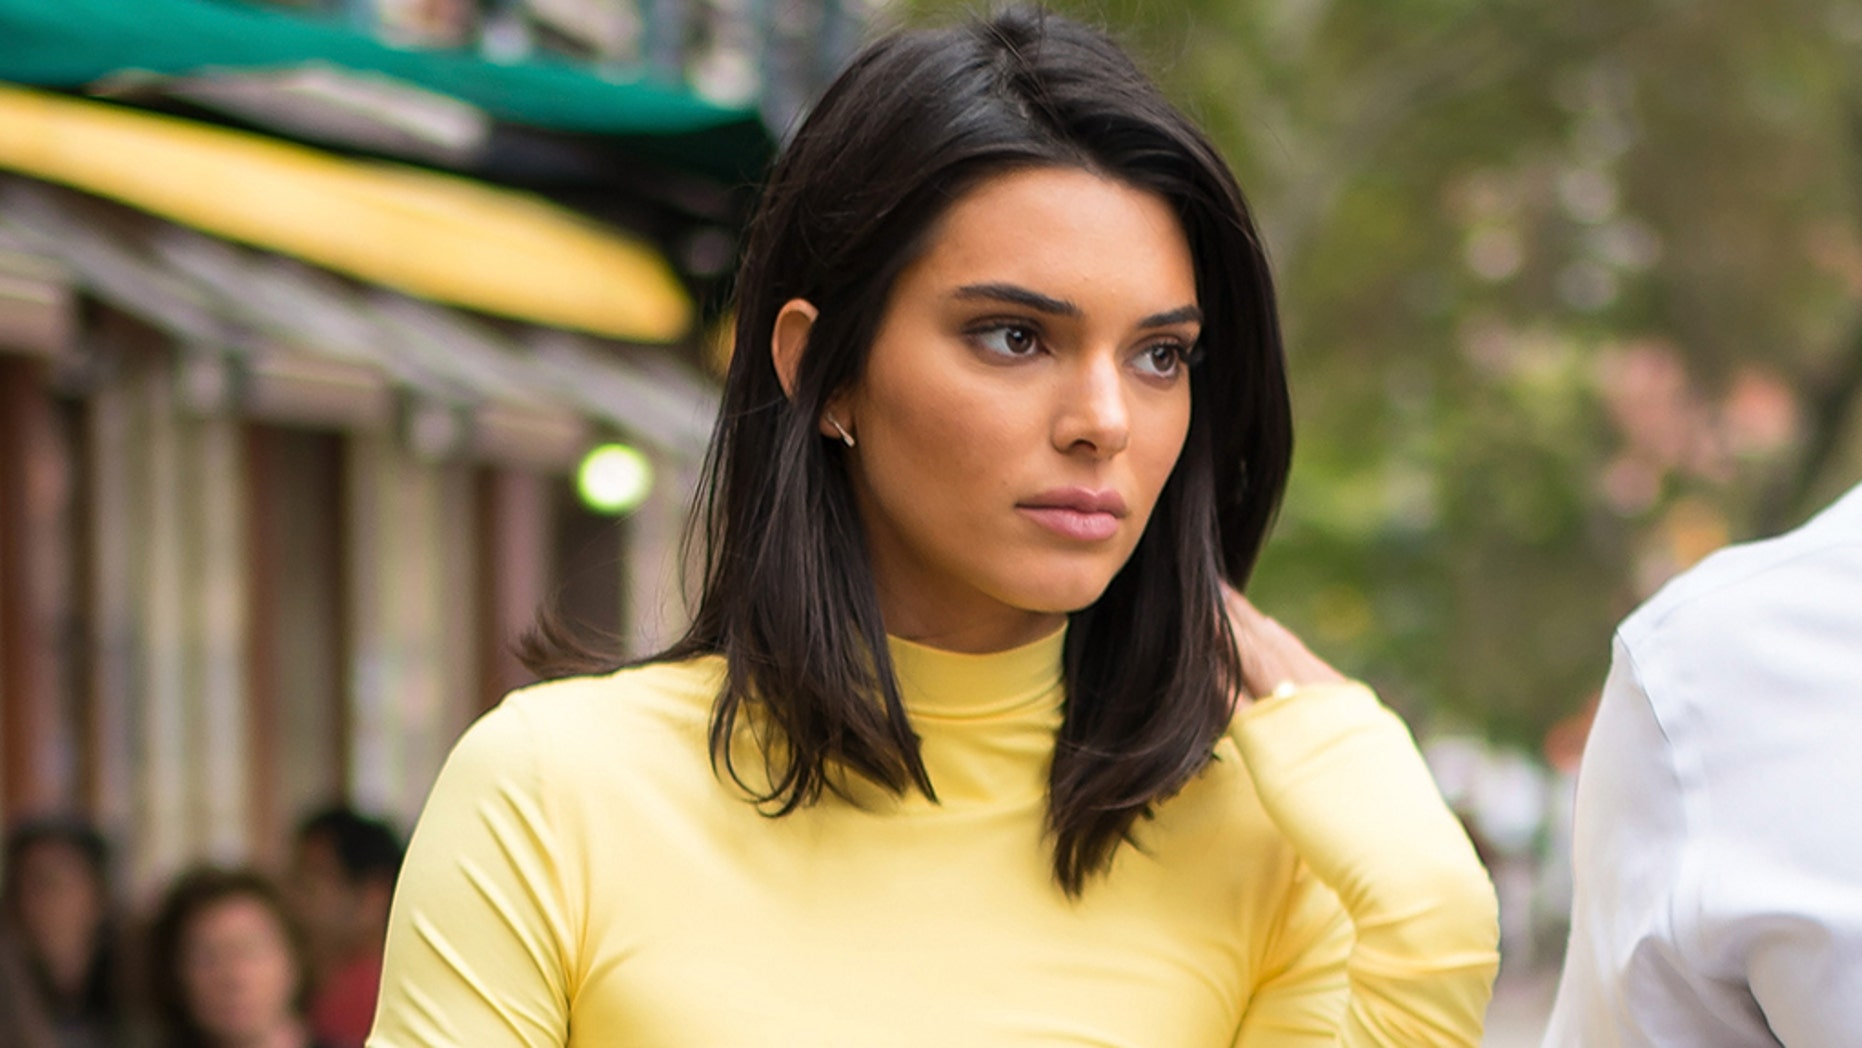 Kris Jenner took to social media on Saturday to praise her daughter, Kendall, who she said would repeat a non-public memoir later in the weekend.